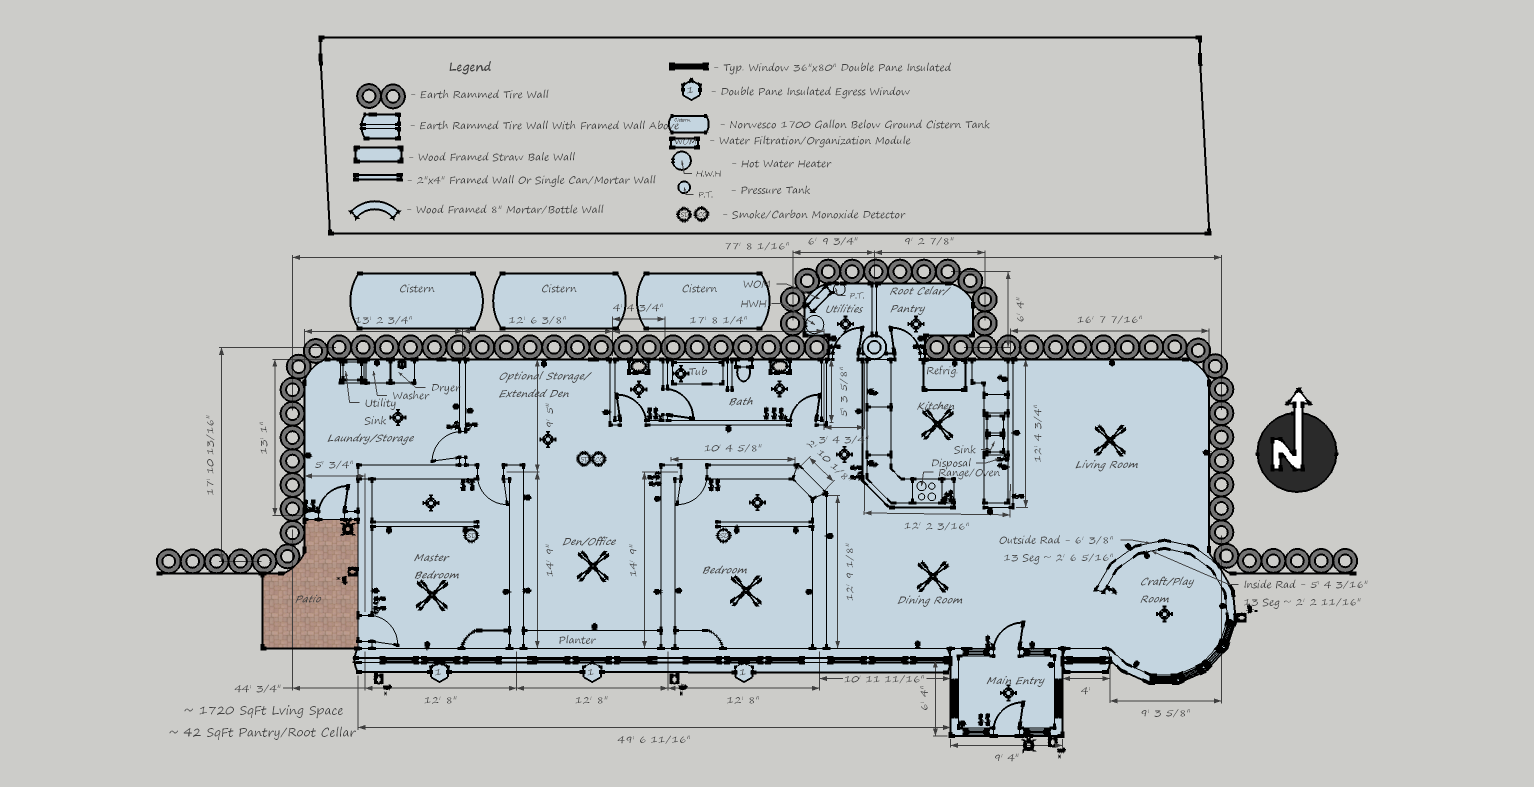 Our Secondhand Home  Floor Plan    Take  New and improved Earthship design